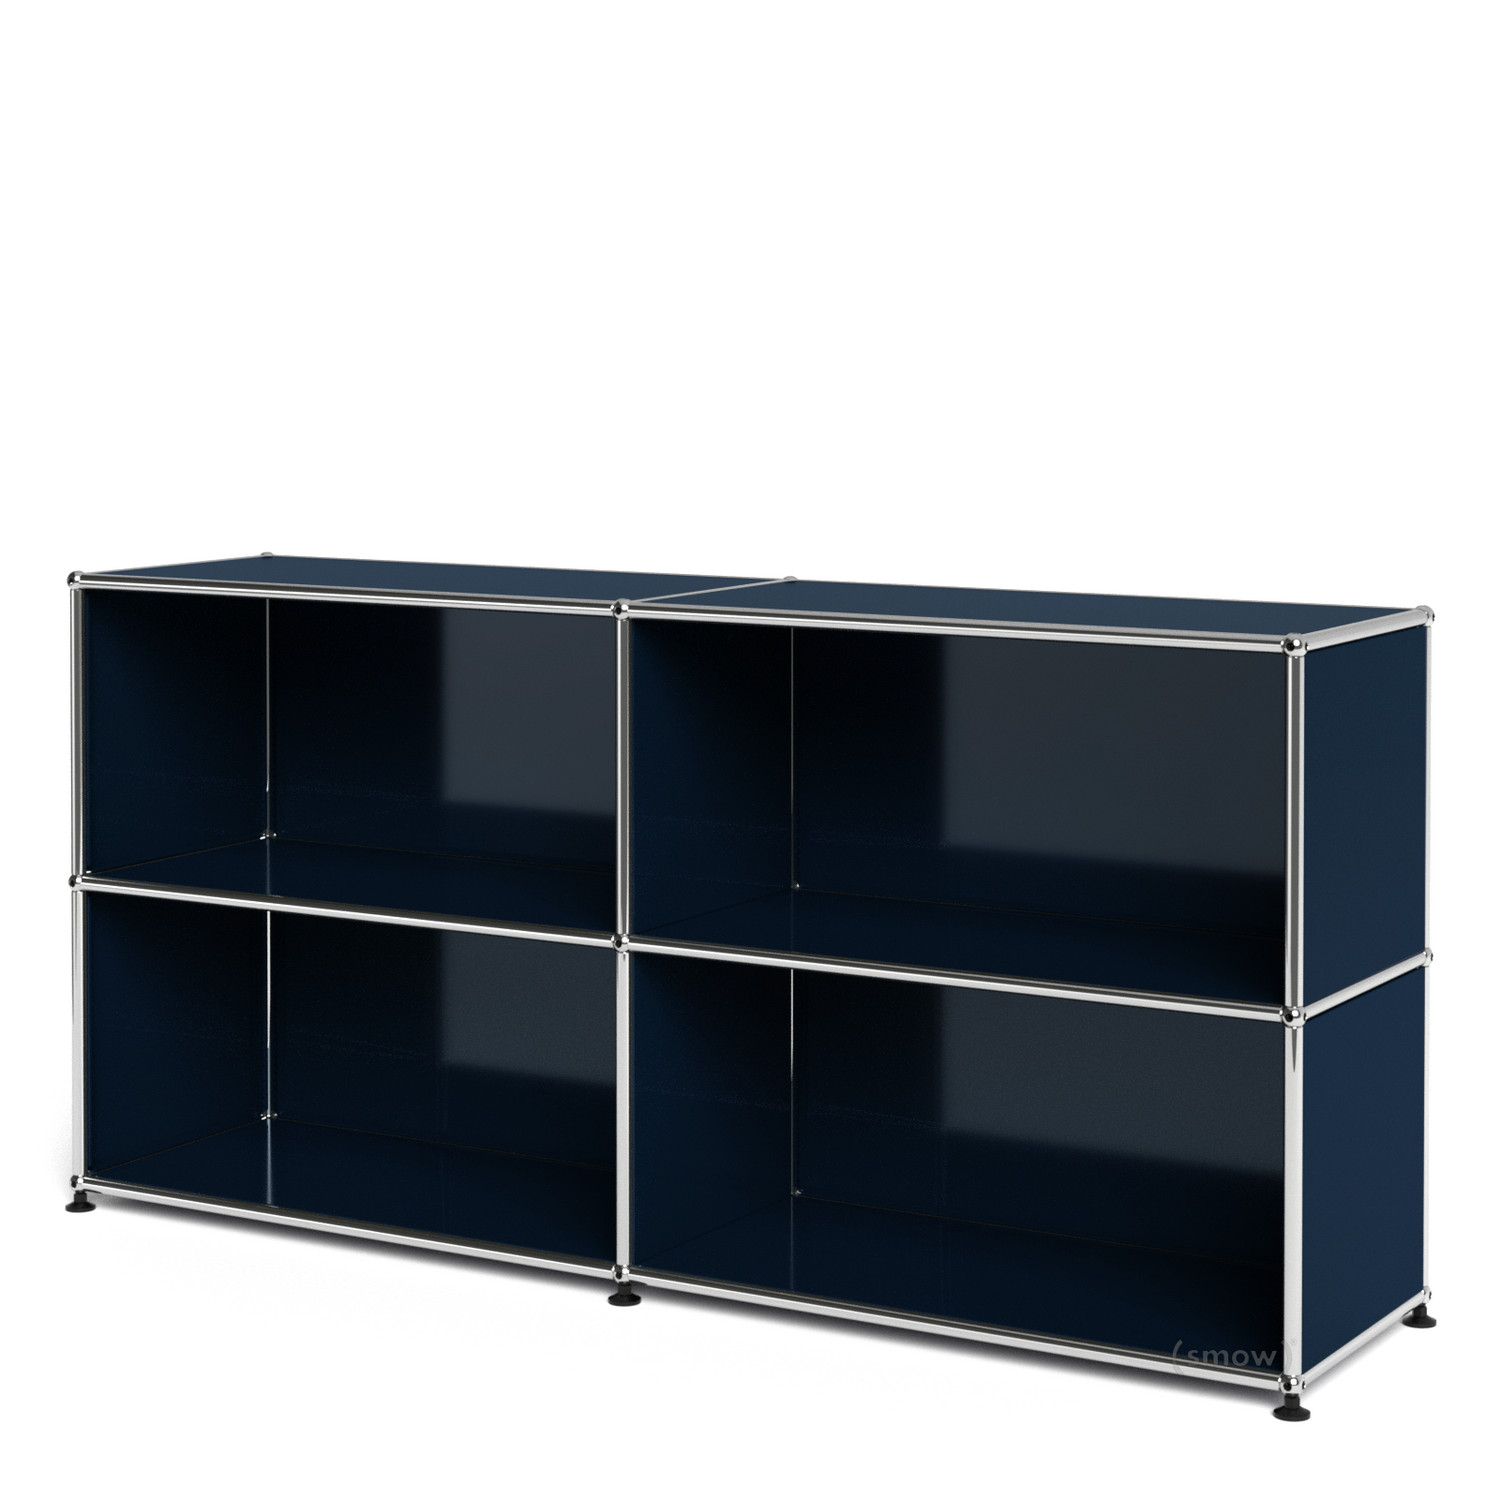 Usm haller sideboard l open steel blue ral 5011 by fritz for Usm haller braun